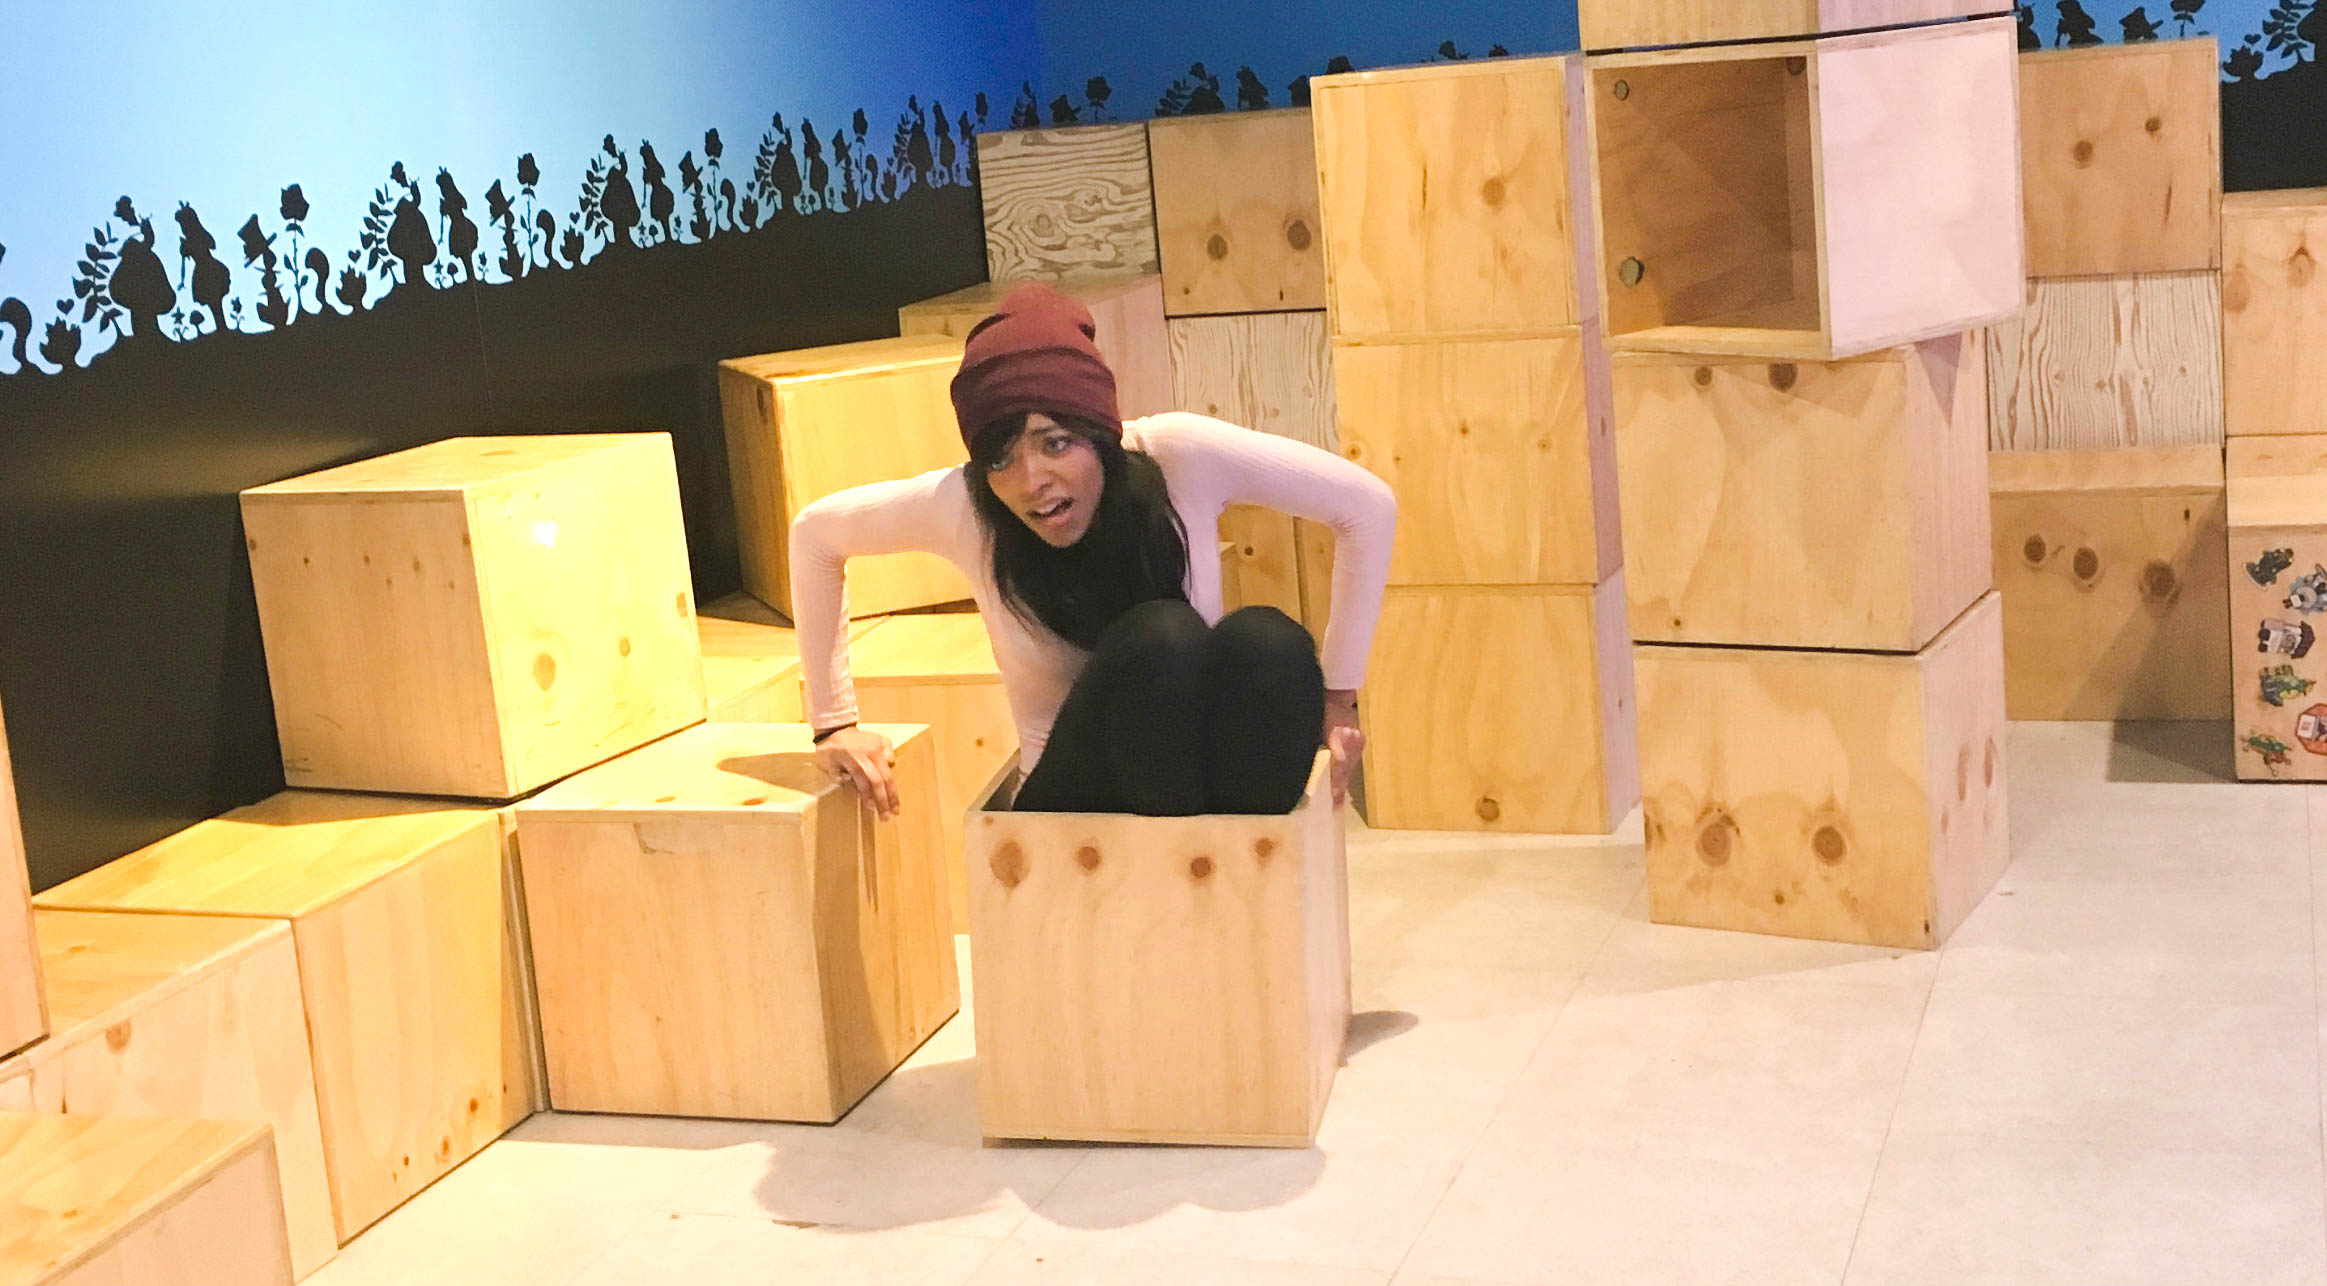 Me getting stuck in a box in a museum, The Alive Museum, Seoul, South Korea - Kay